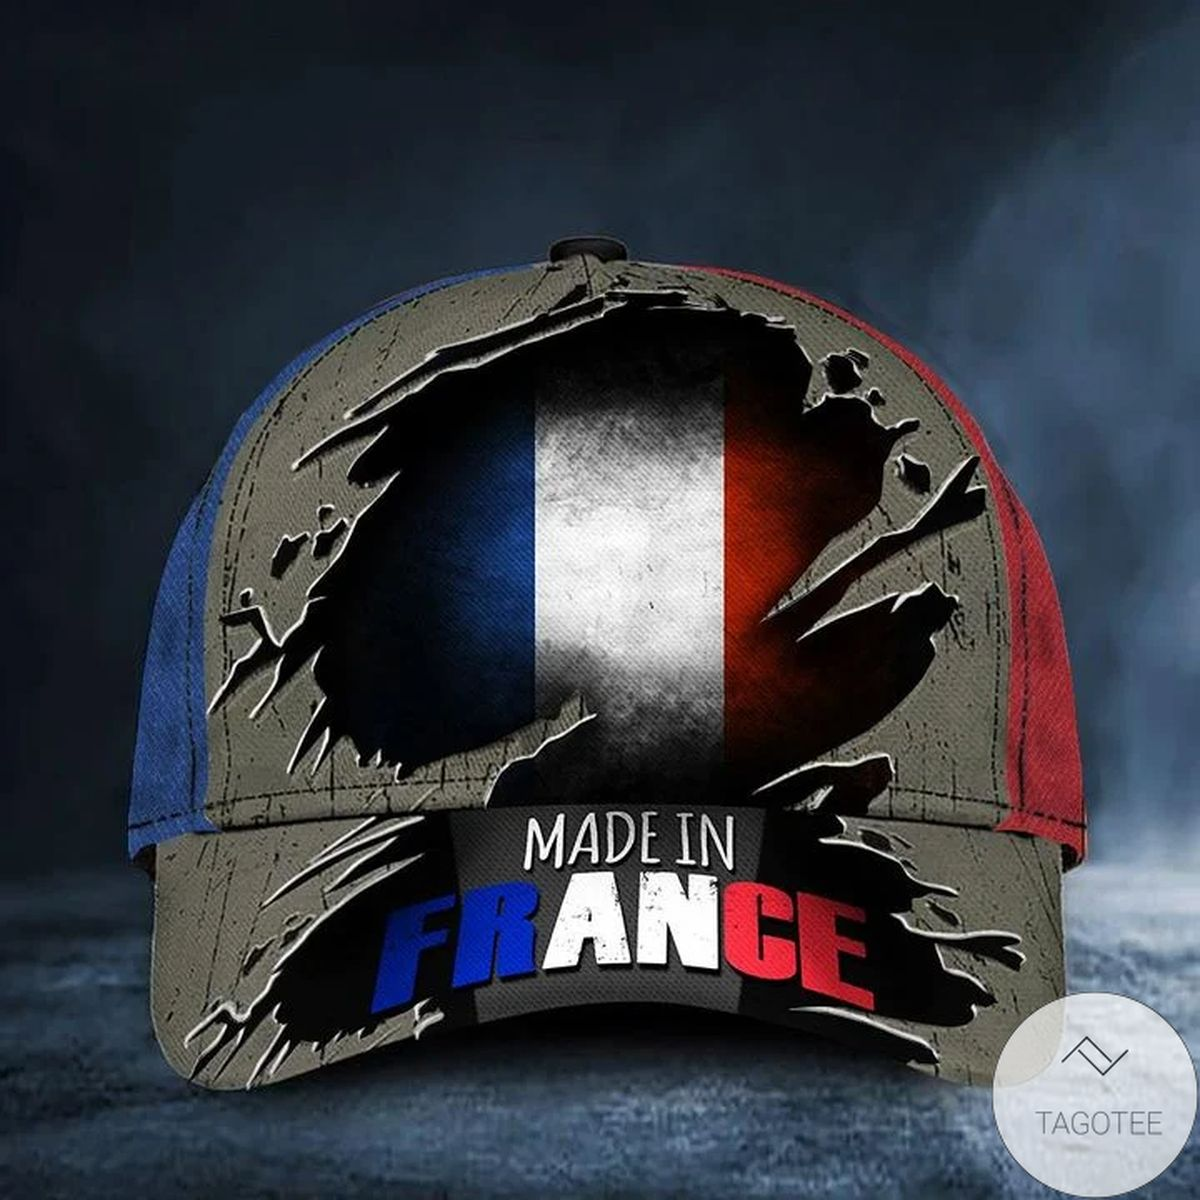 Made In France Vintage Old Retro Patriotic French Flag Cap